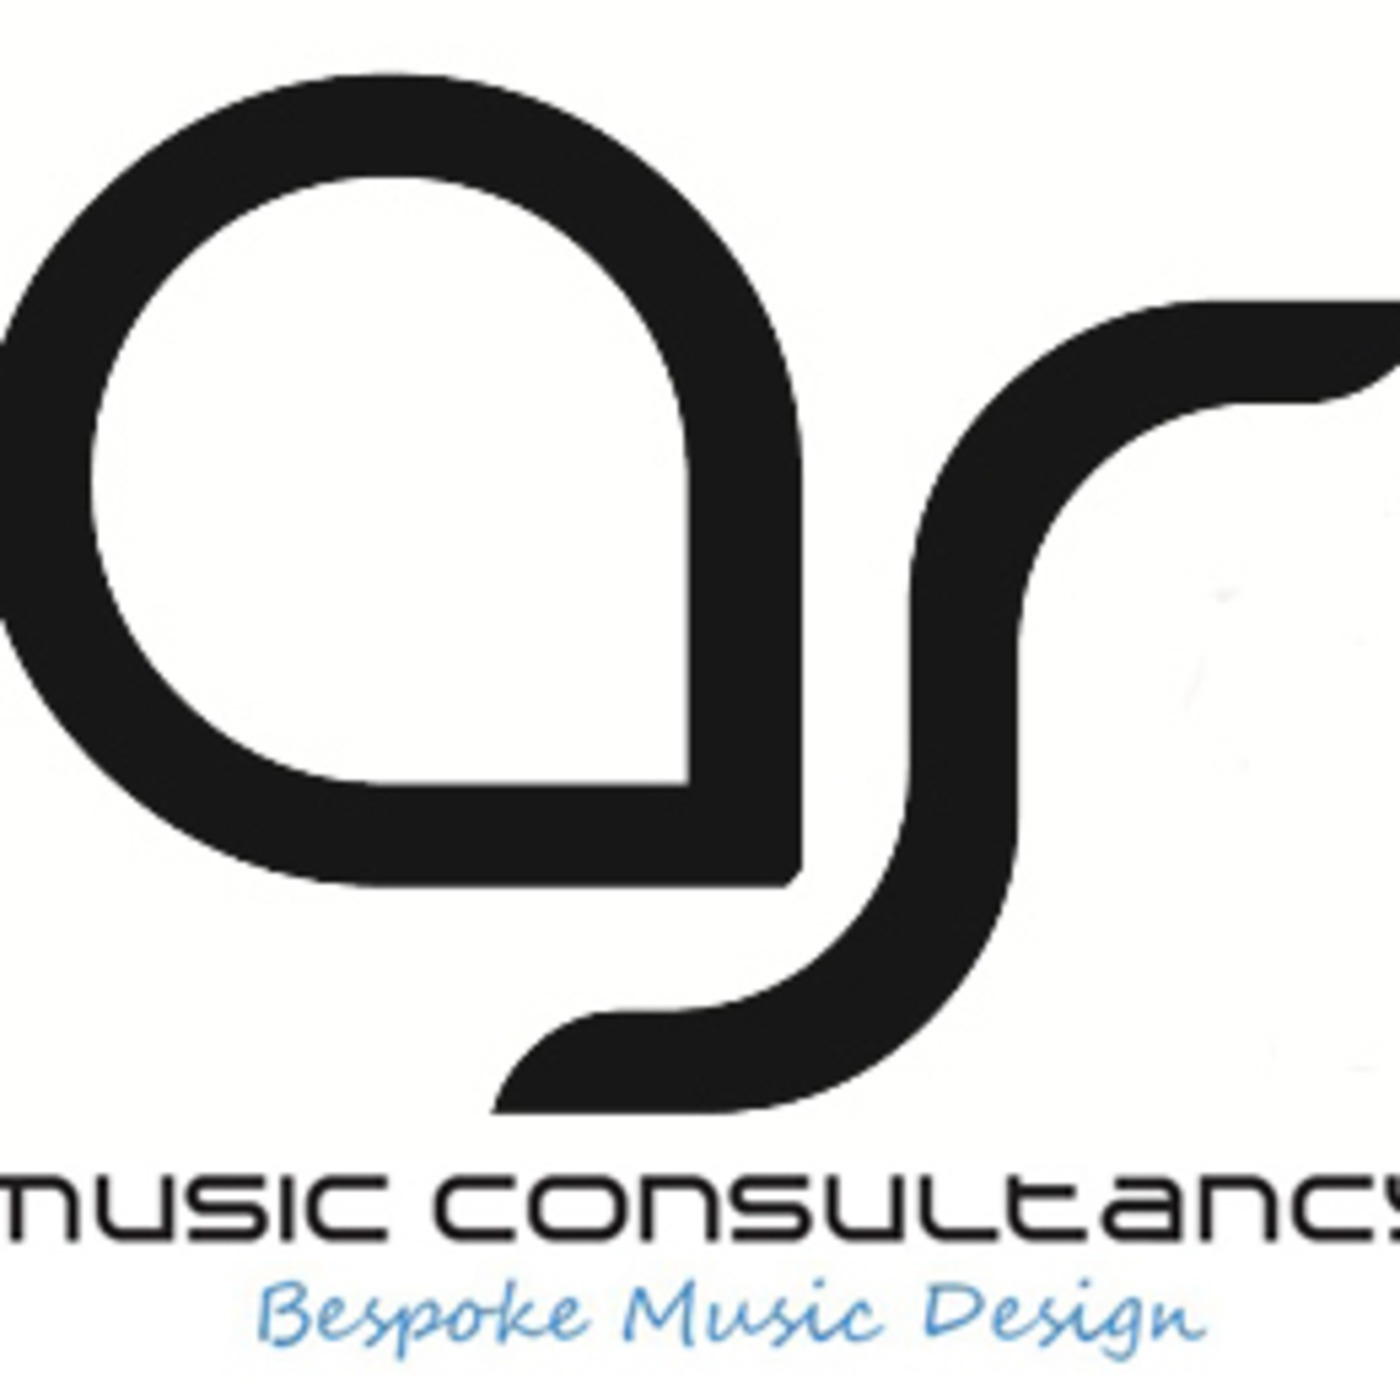 as-musicconsultancy